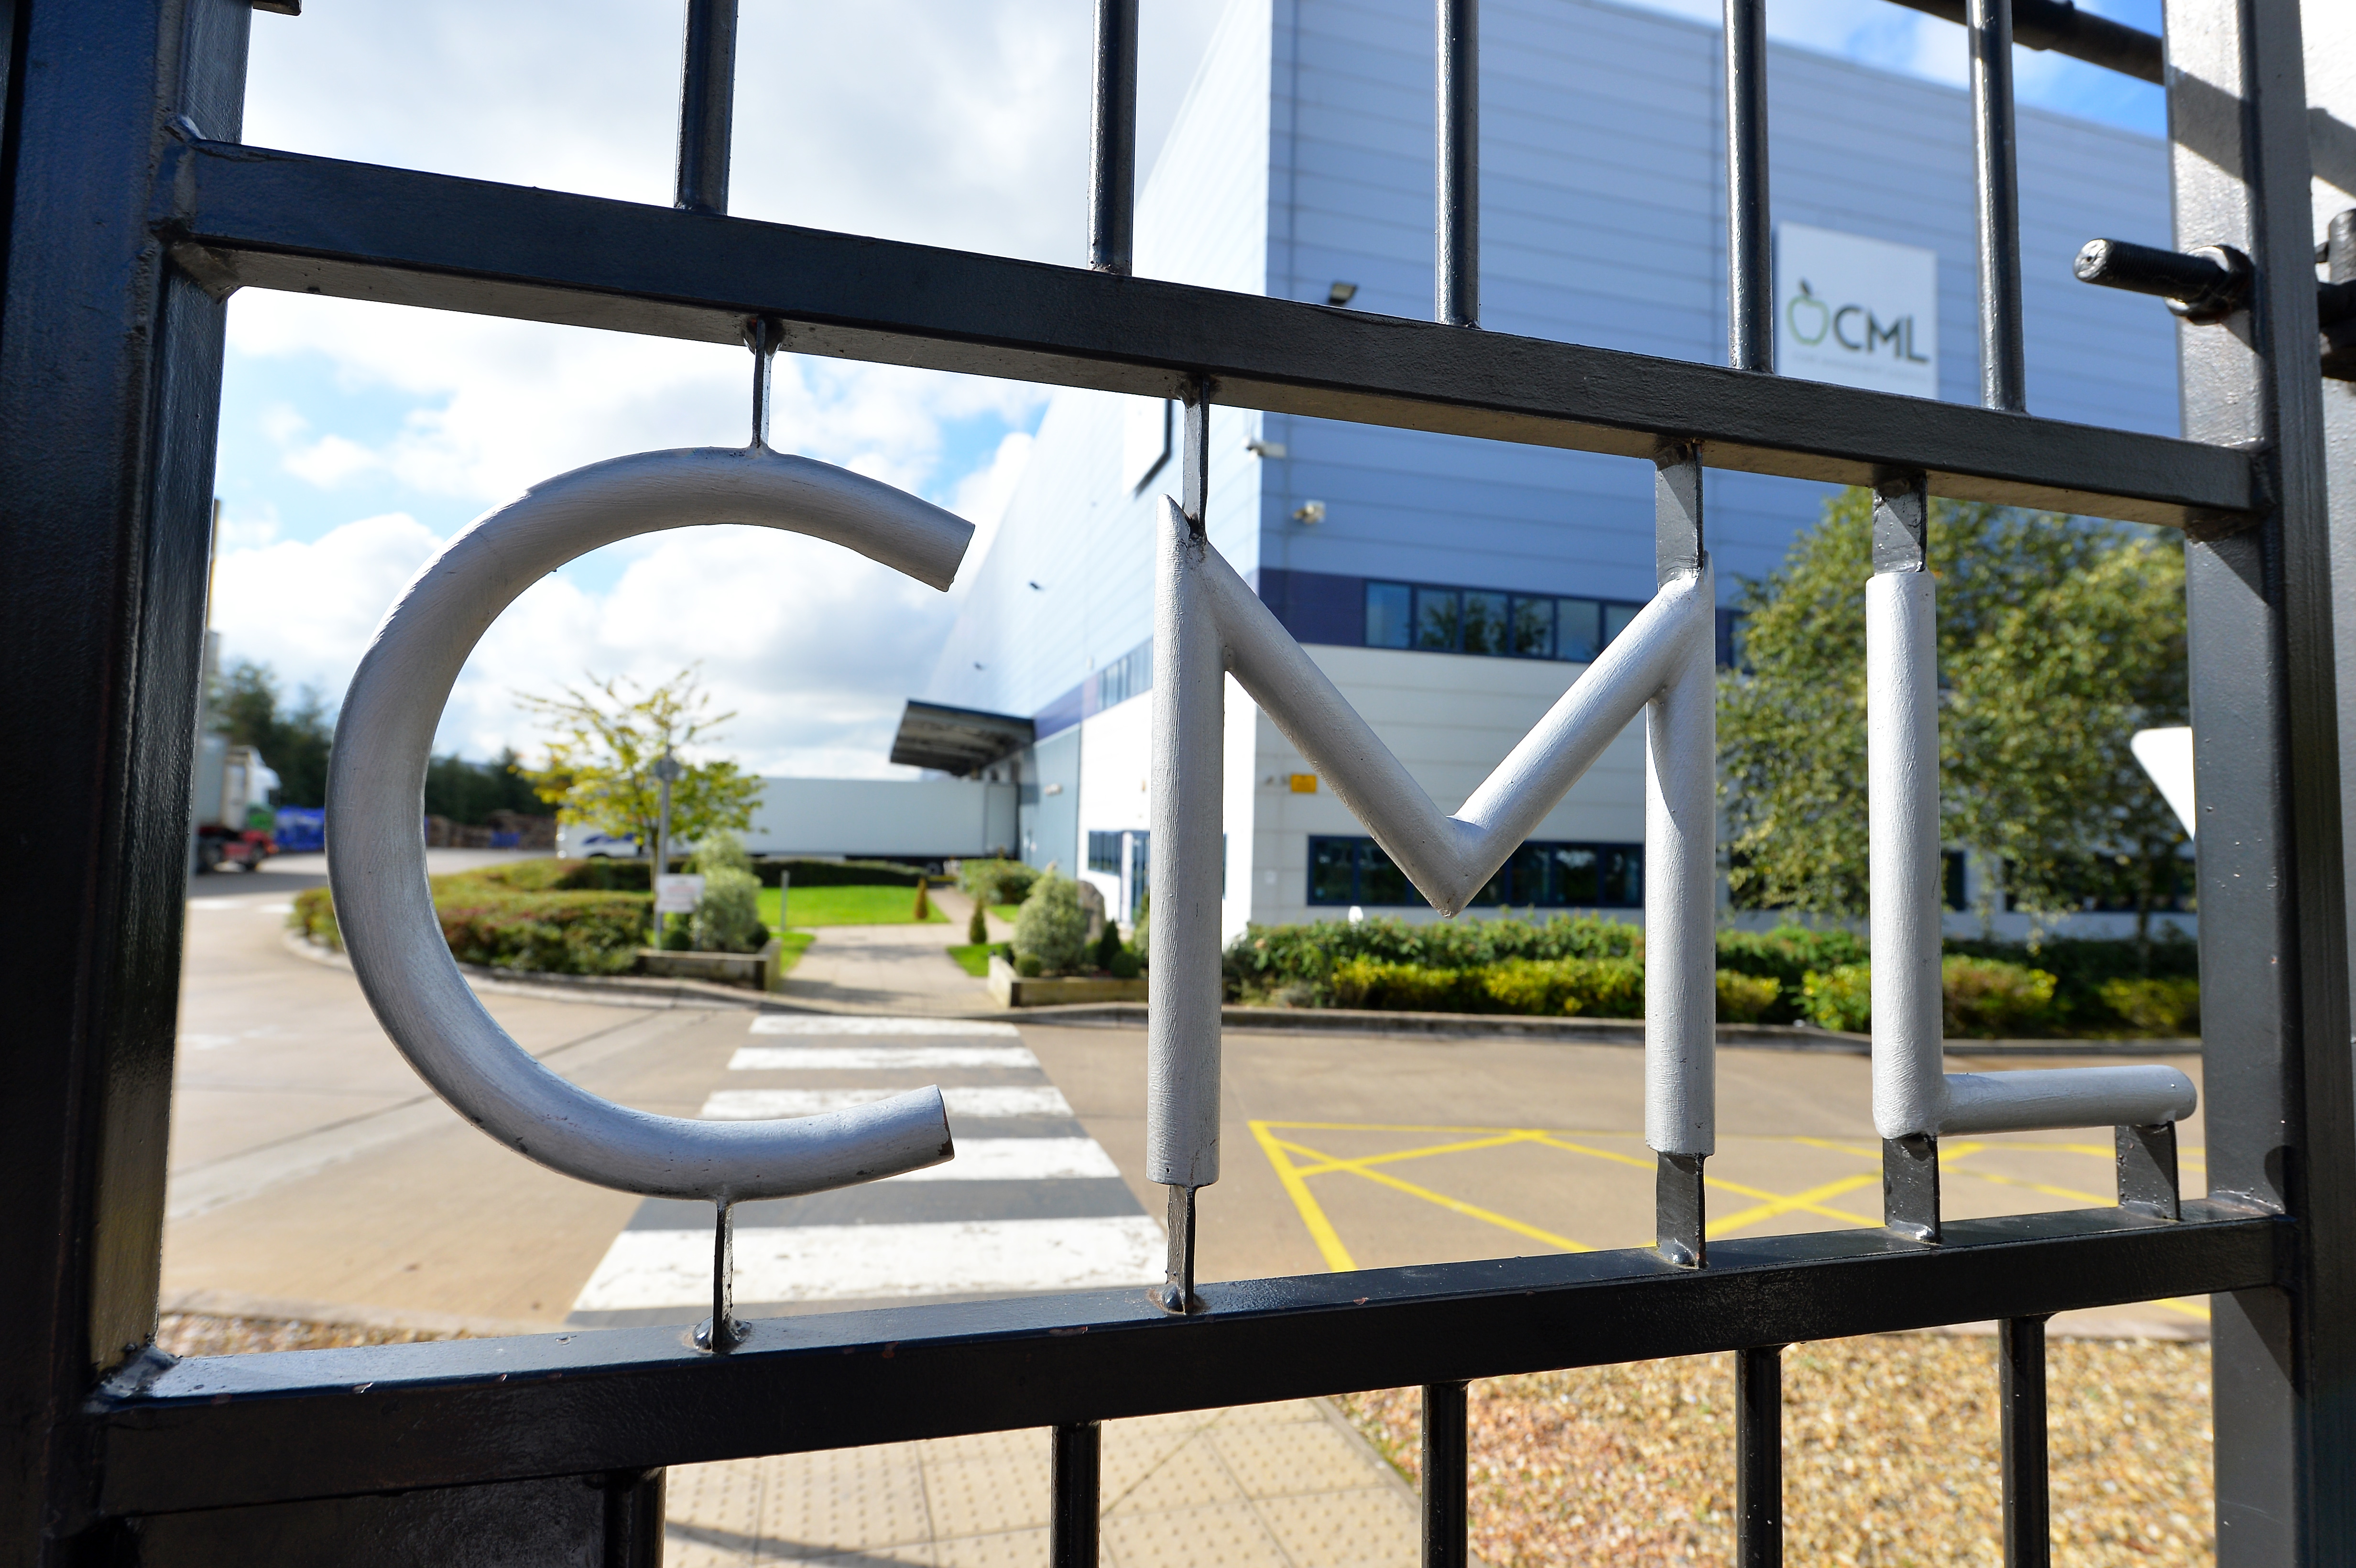 CML Secures New Contracts With Leading Womenswear Brands